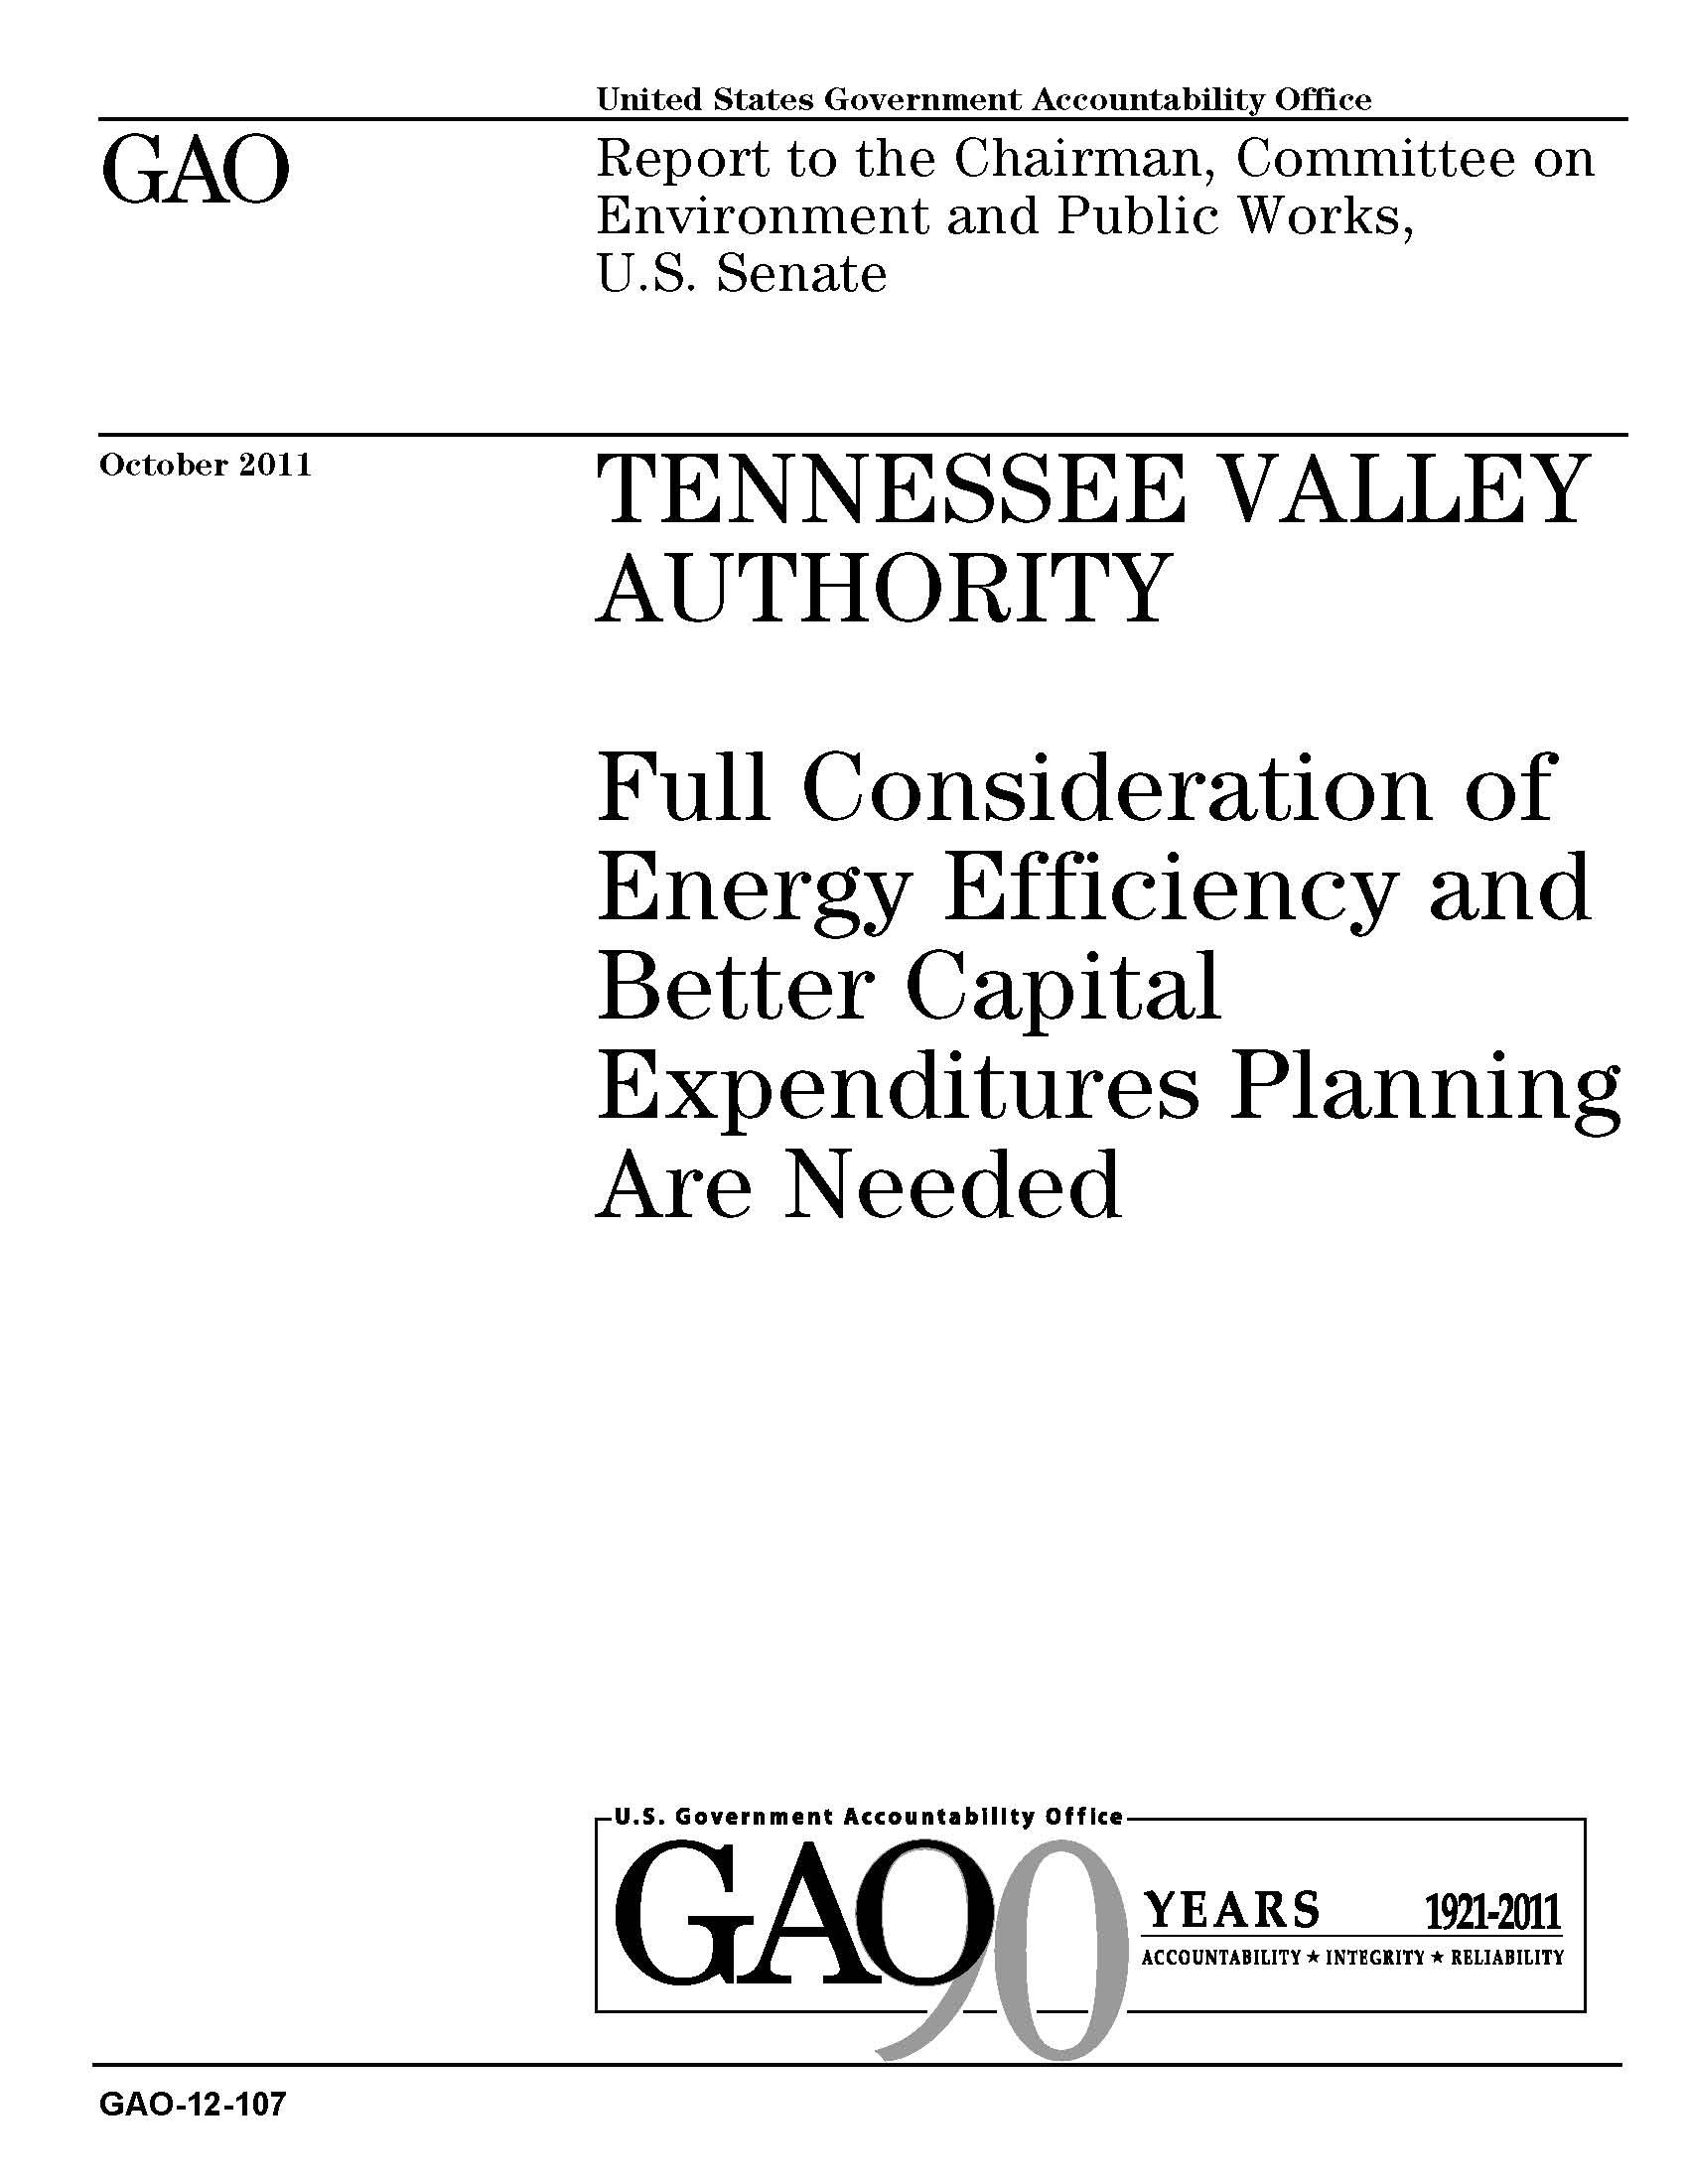 GAO Report on the Tennessee Valley Authority October 2011